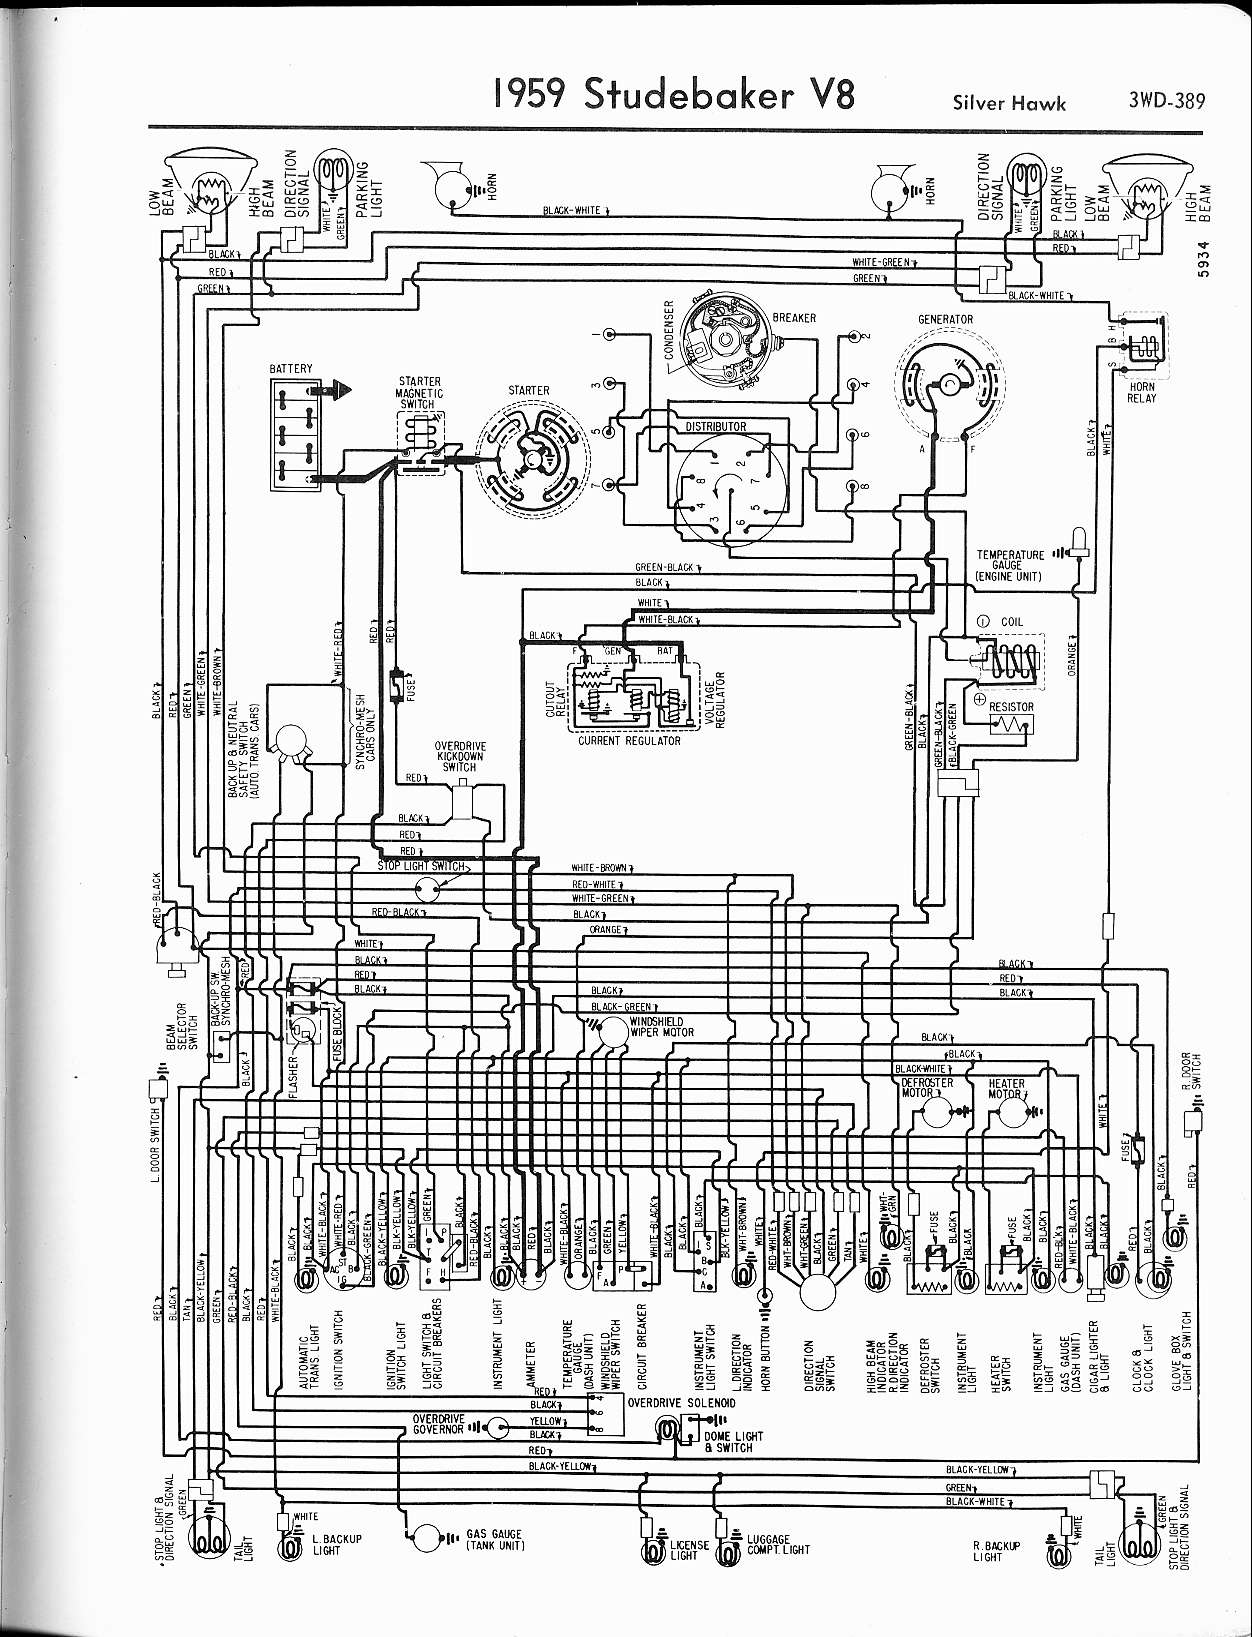 hight resolution of wiring diagram for 1960 studebaker v8 wiring diagram navstudebaker wiring diagrams the old car manual project